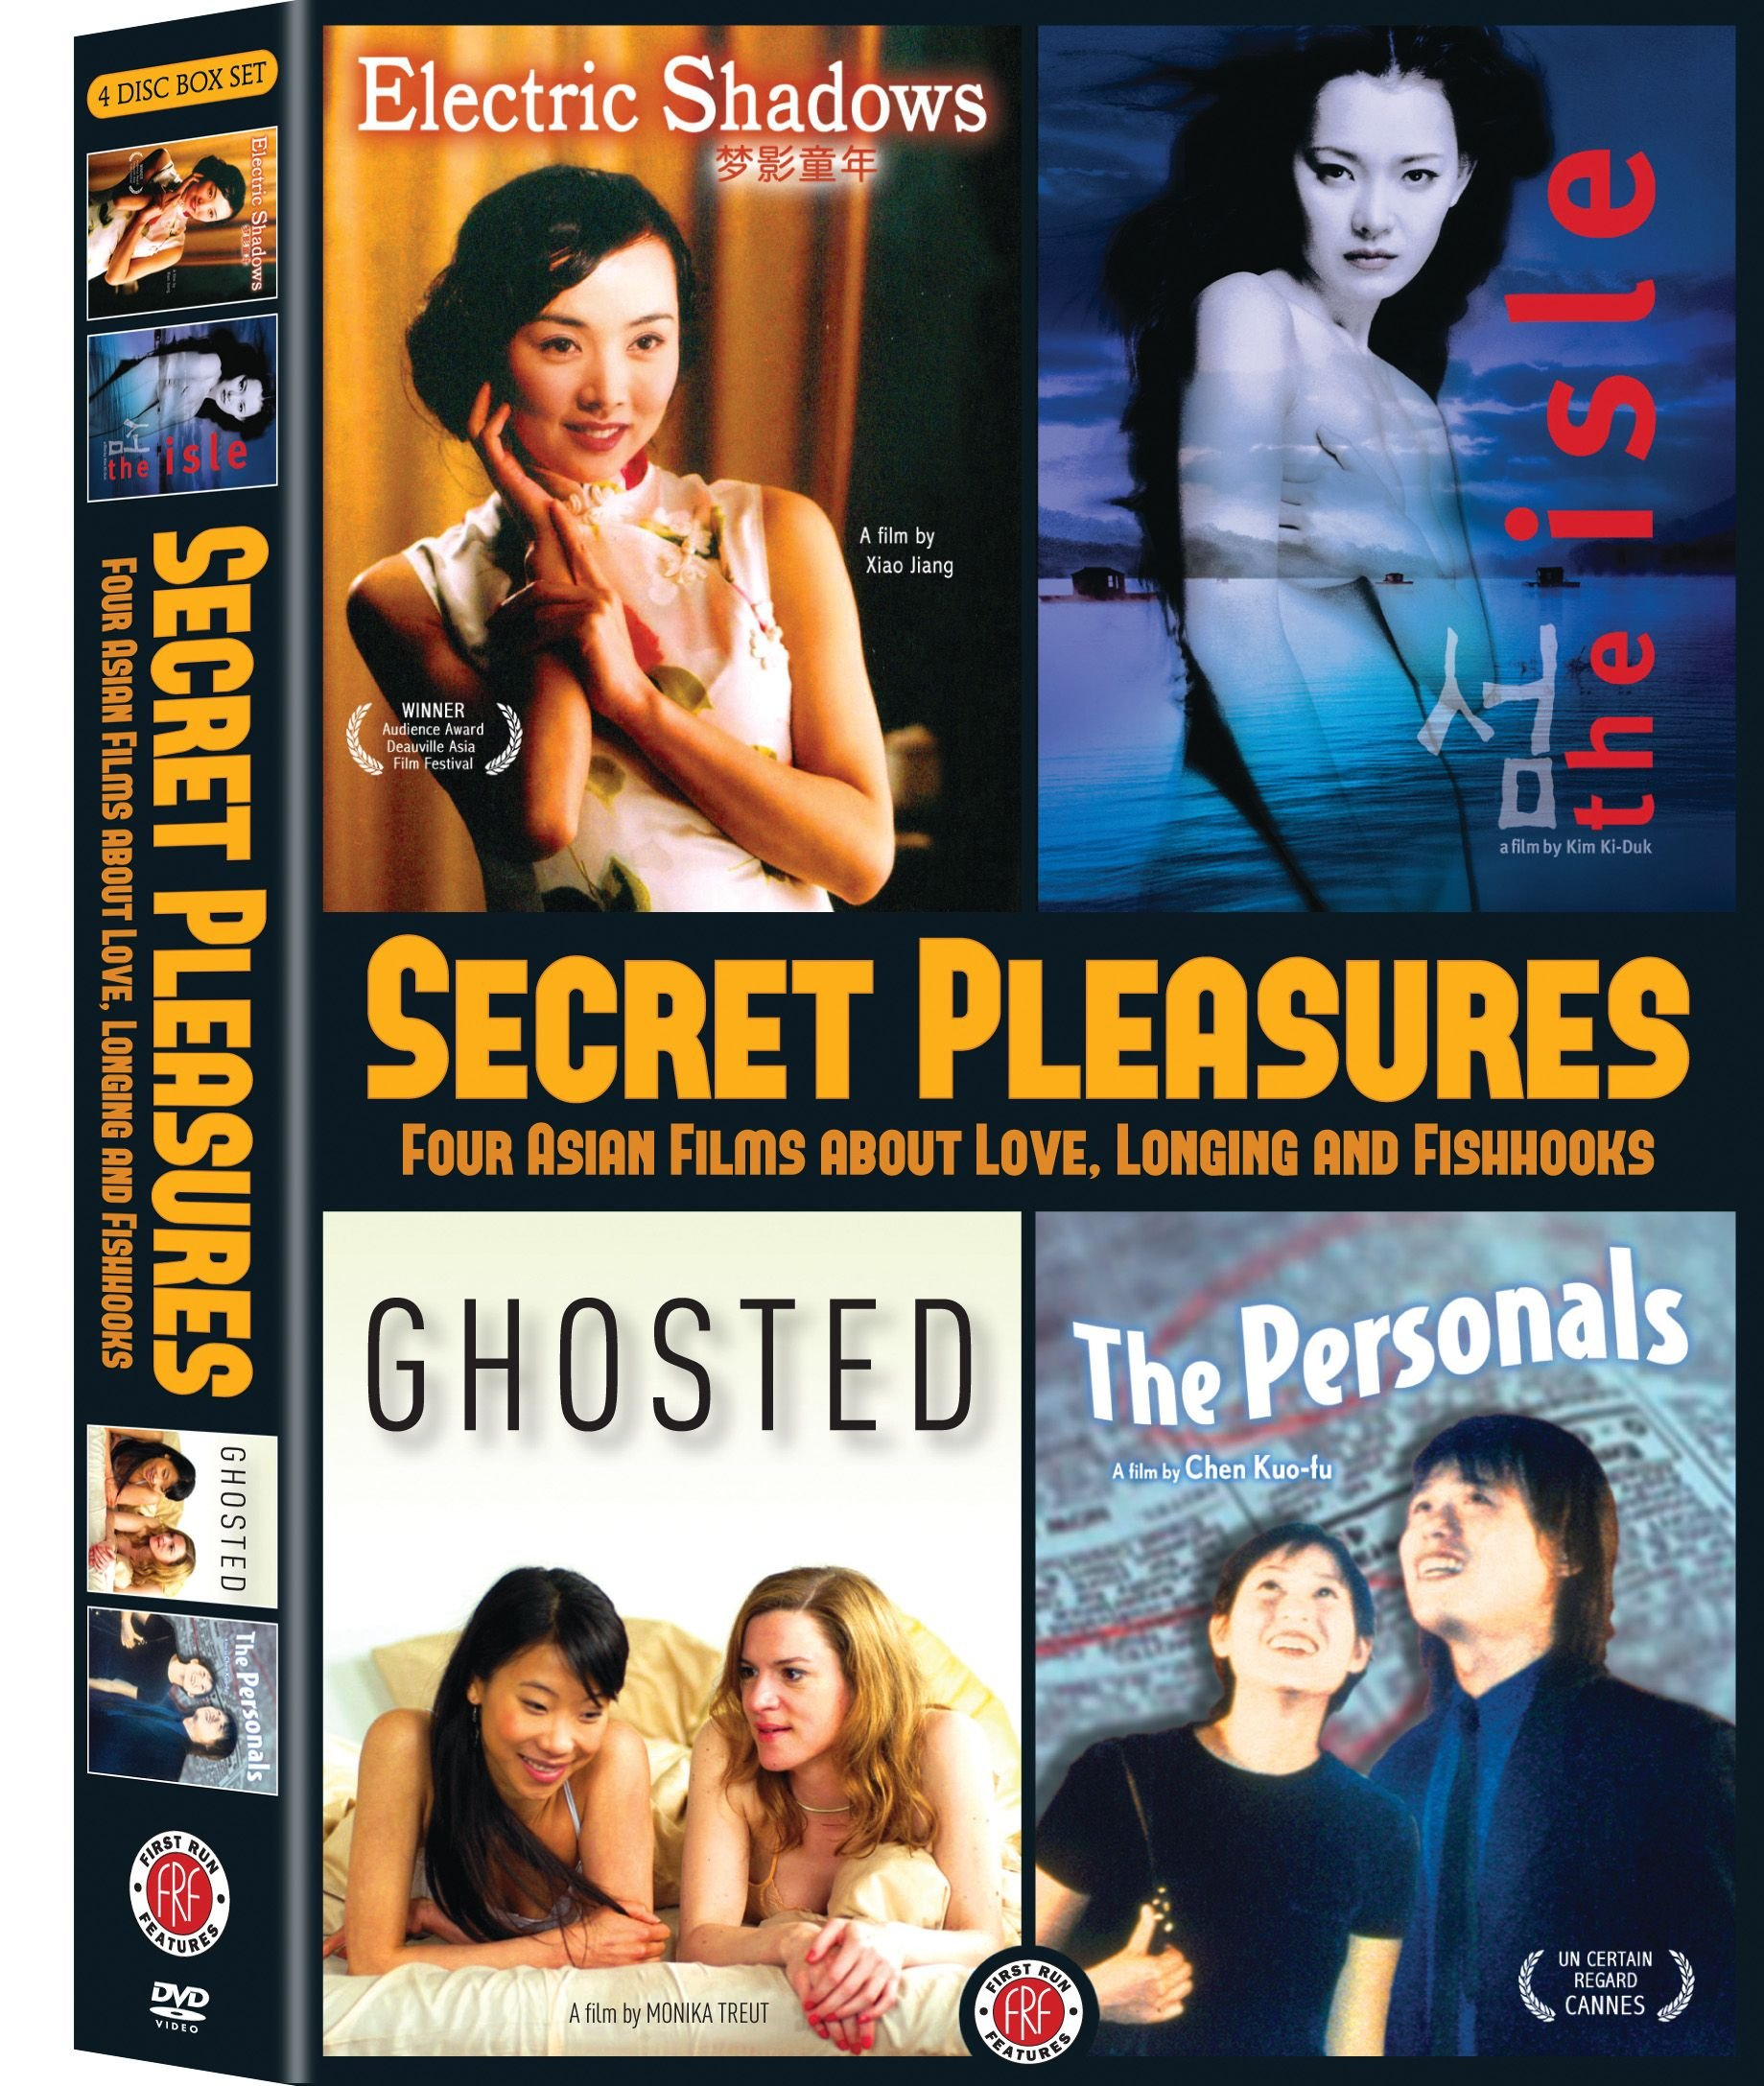 DVD : Jiang Yihong - Secret Pleasures: Four Asian Films About Love, Longing And Fishhooks (Widescreen, 4PC)